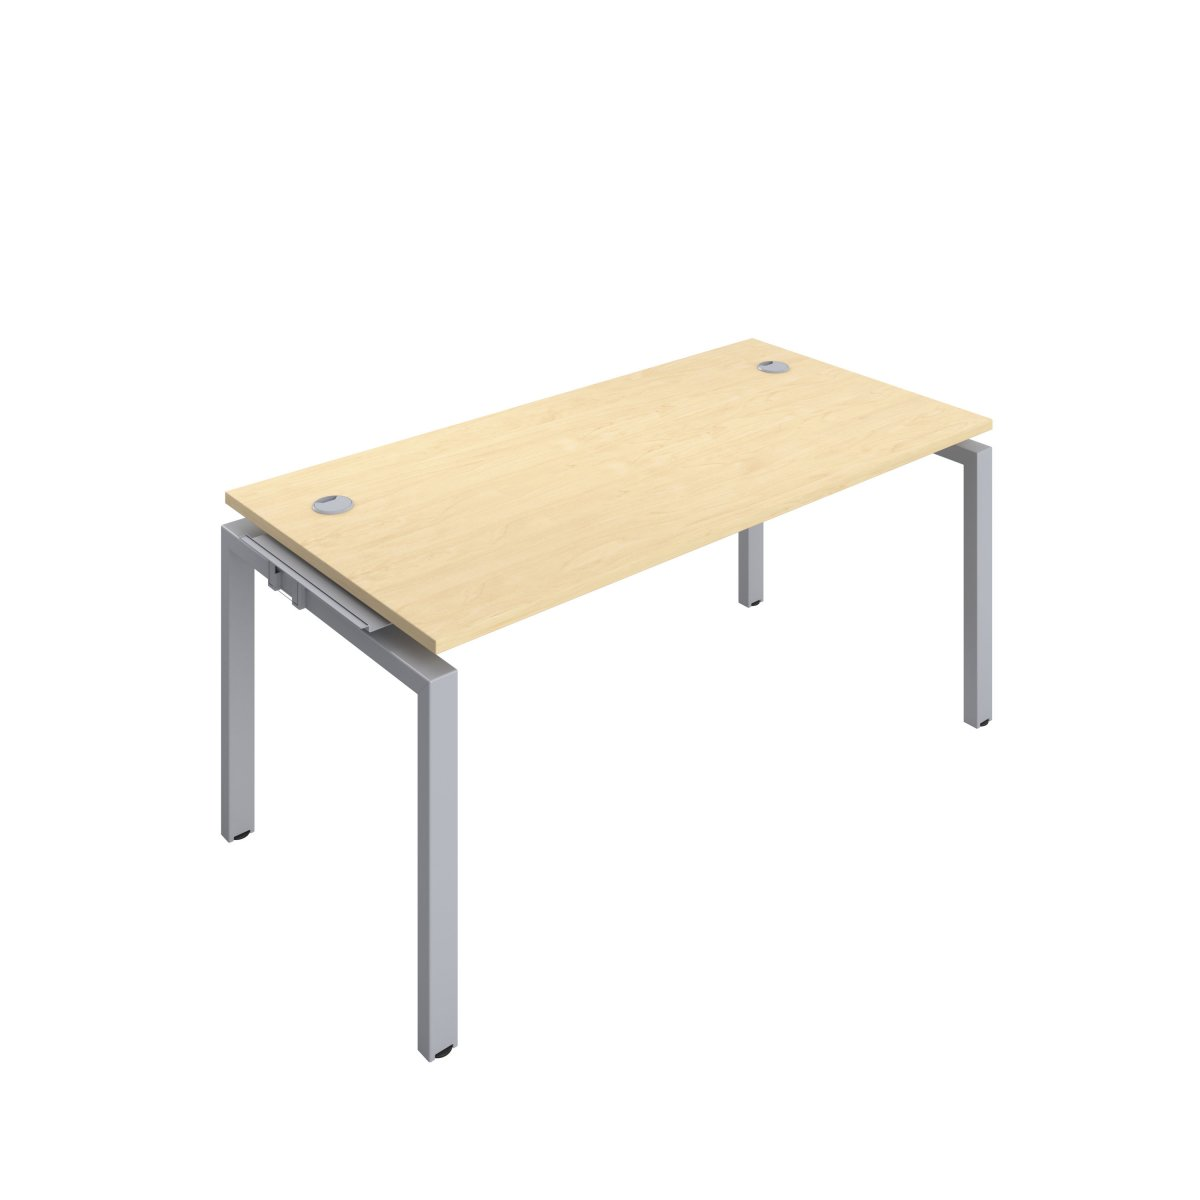 Telescopic 1 Person Bench Extension 1600 X 800 Cable Port Maple-Silver